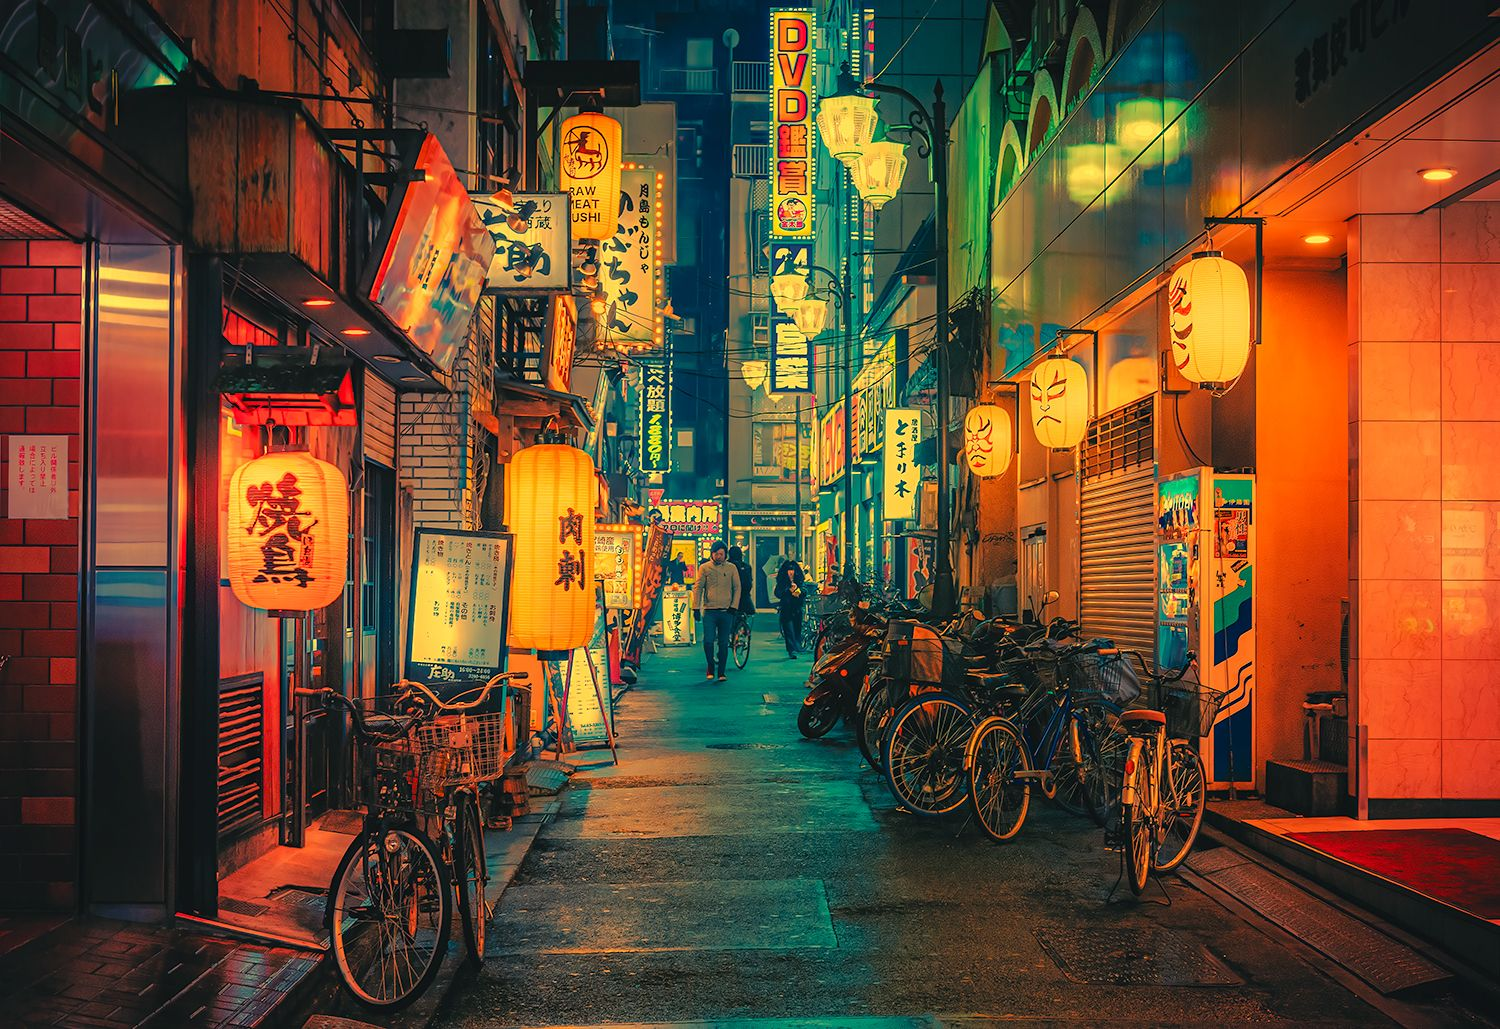 road of gold iv city aesthetic japanese buildings